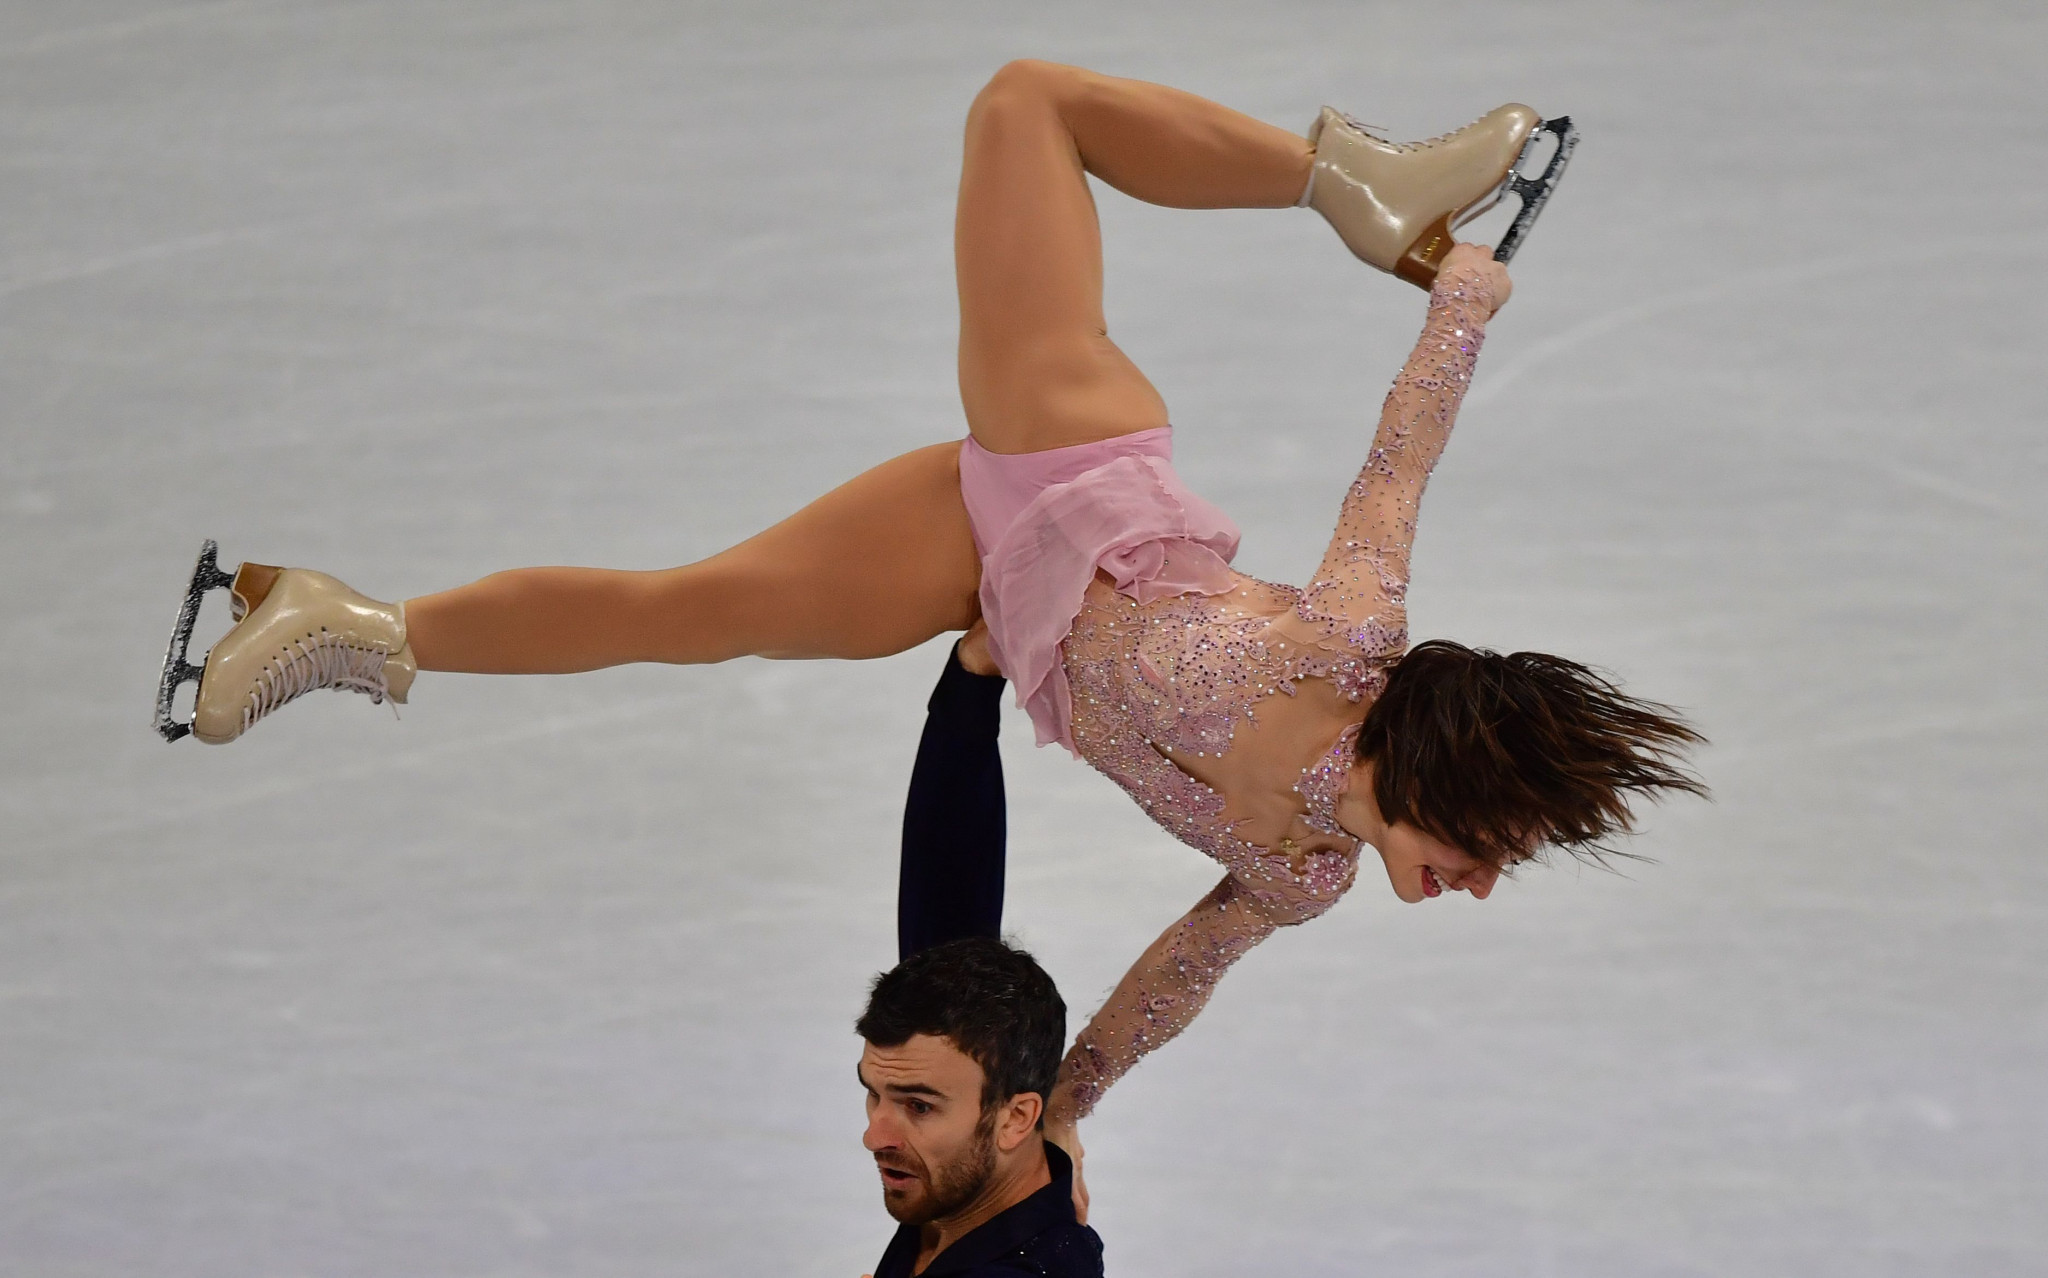 Canada's double world champion in figure skating pairs, Eric Radford, pictured with partner Meagan Duhamel, is among the Jury members for the ISU Awards 2020 ©Getty Images